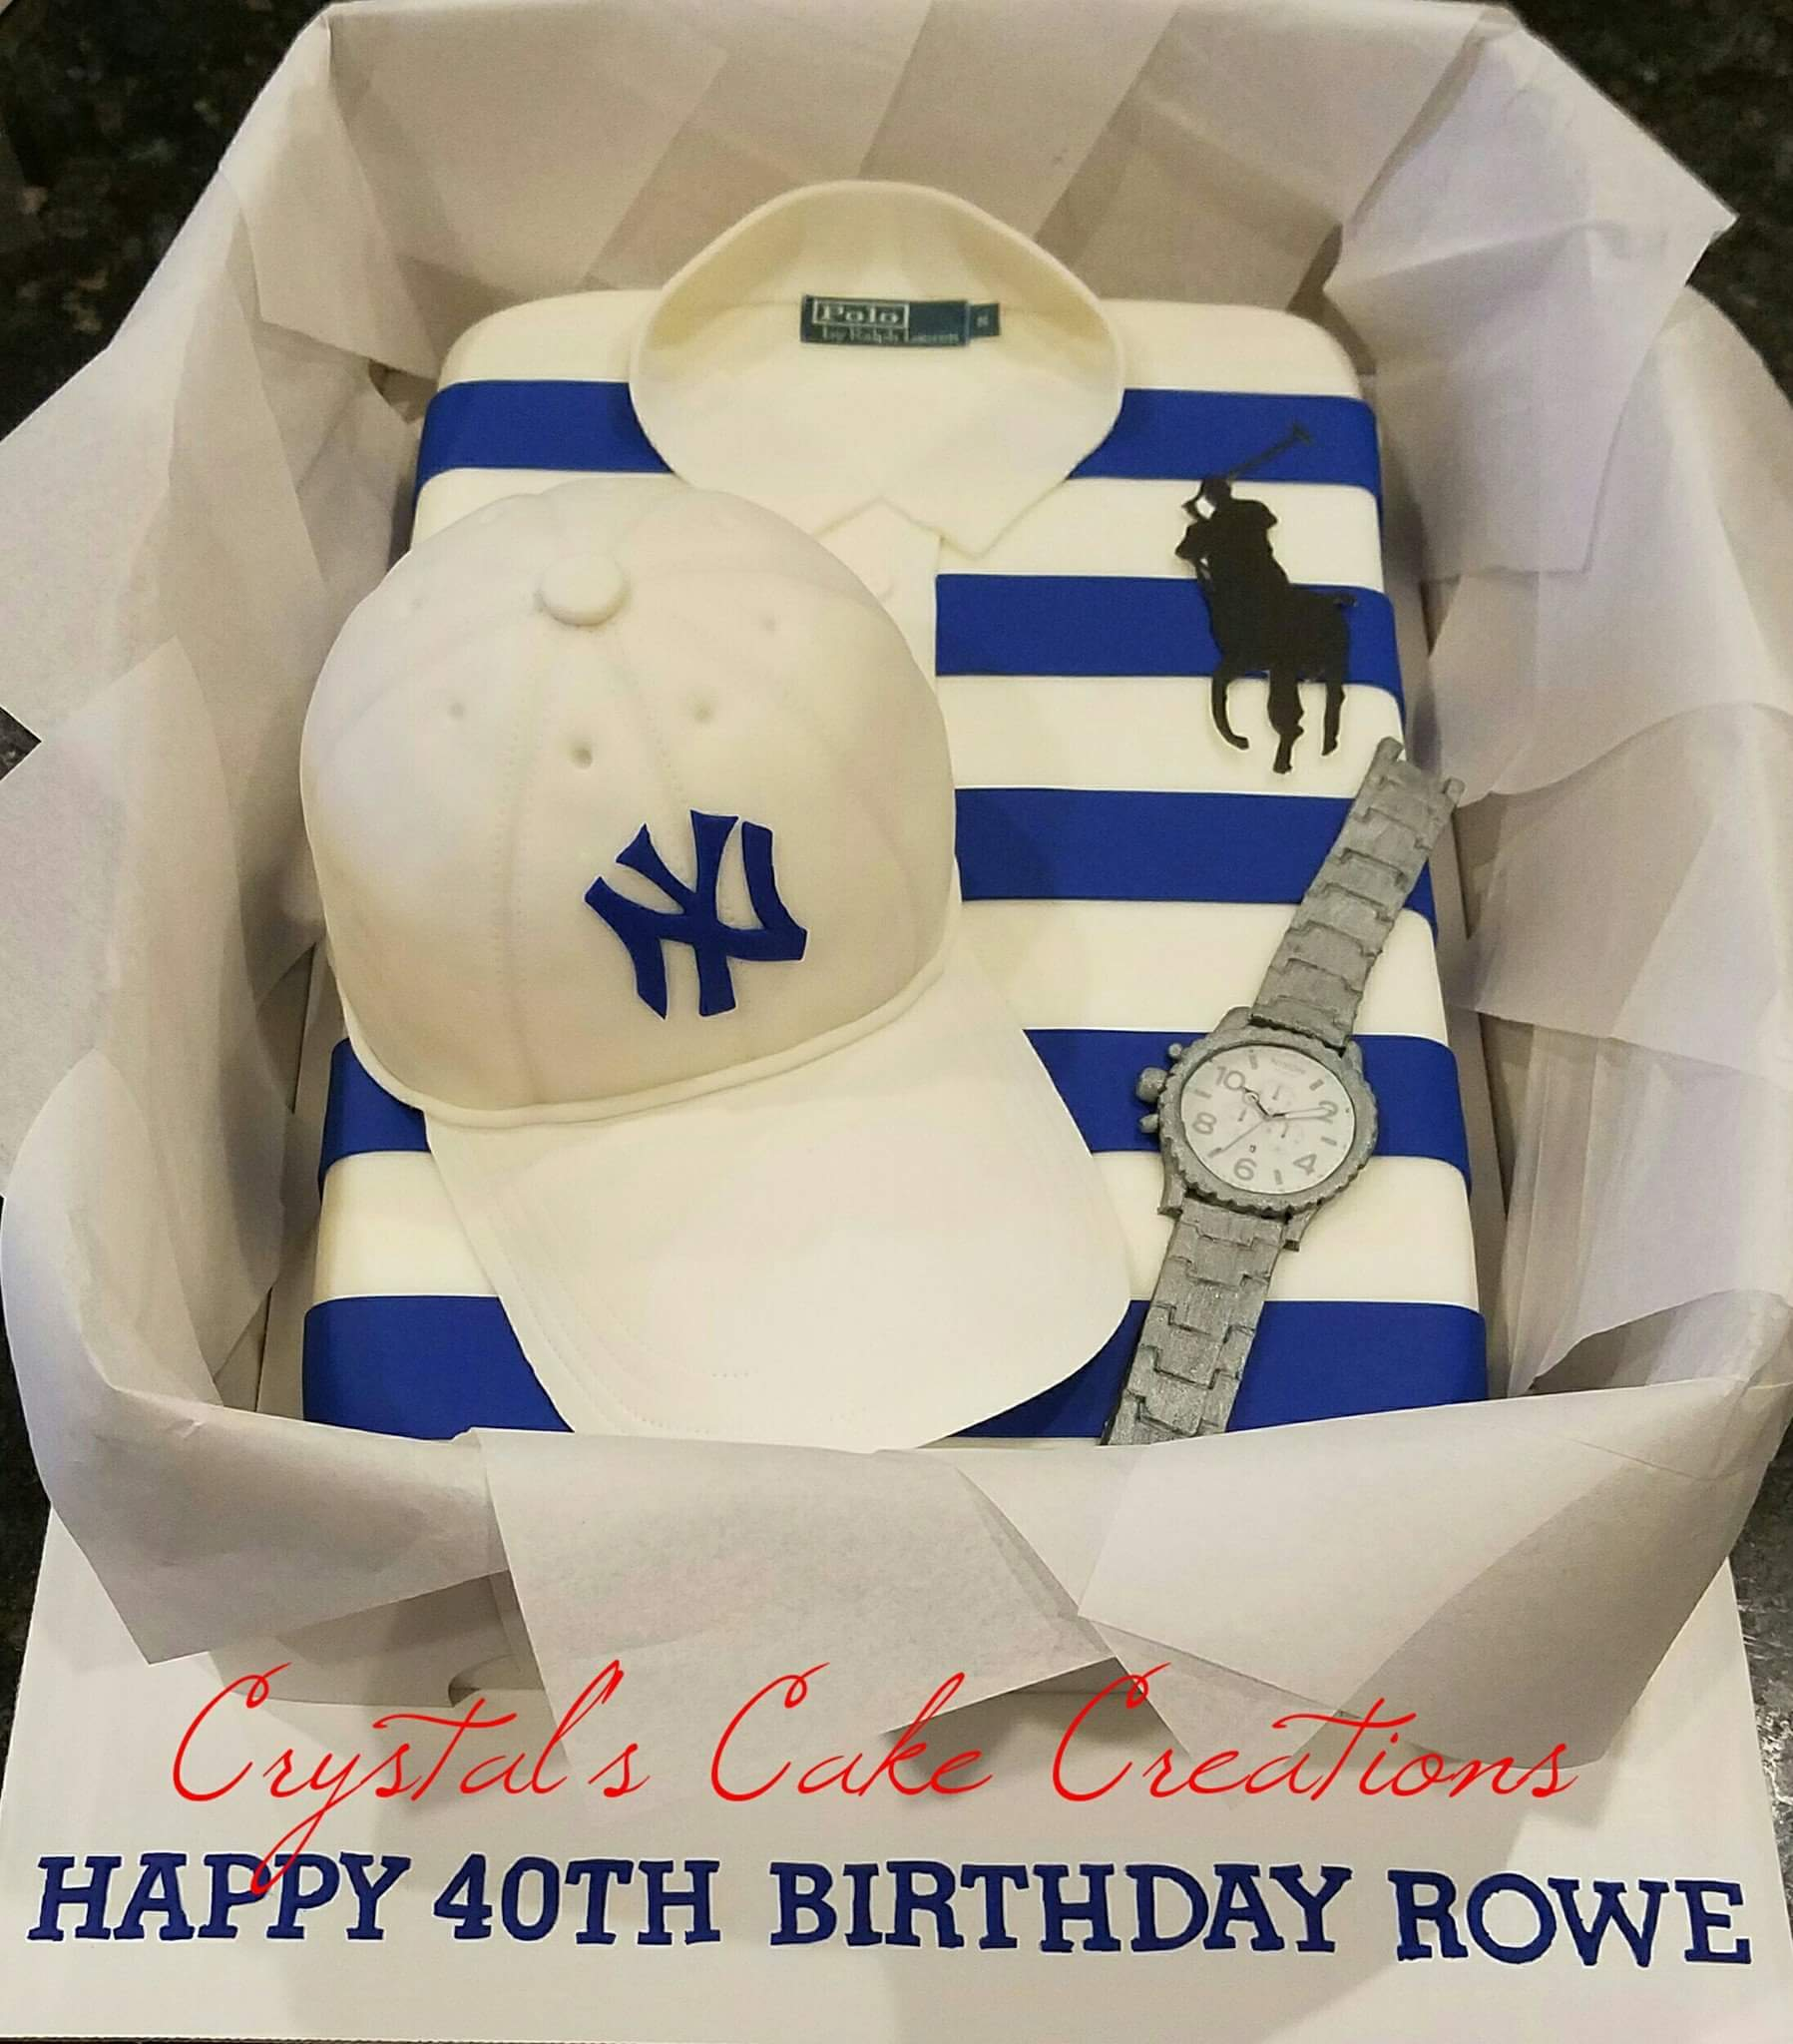 Polo cake with NY hat and watch